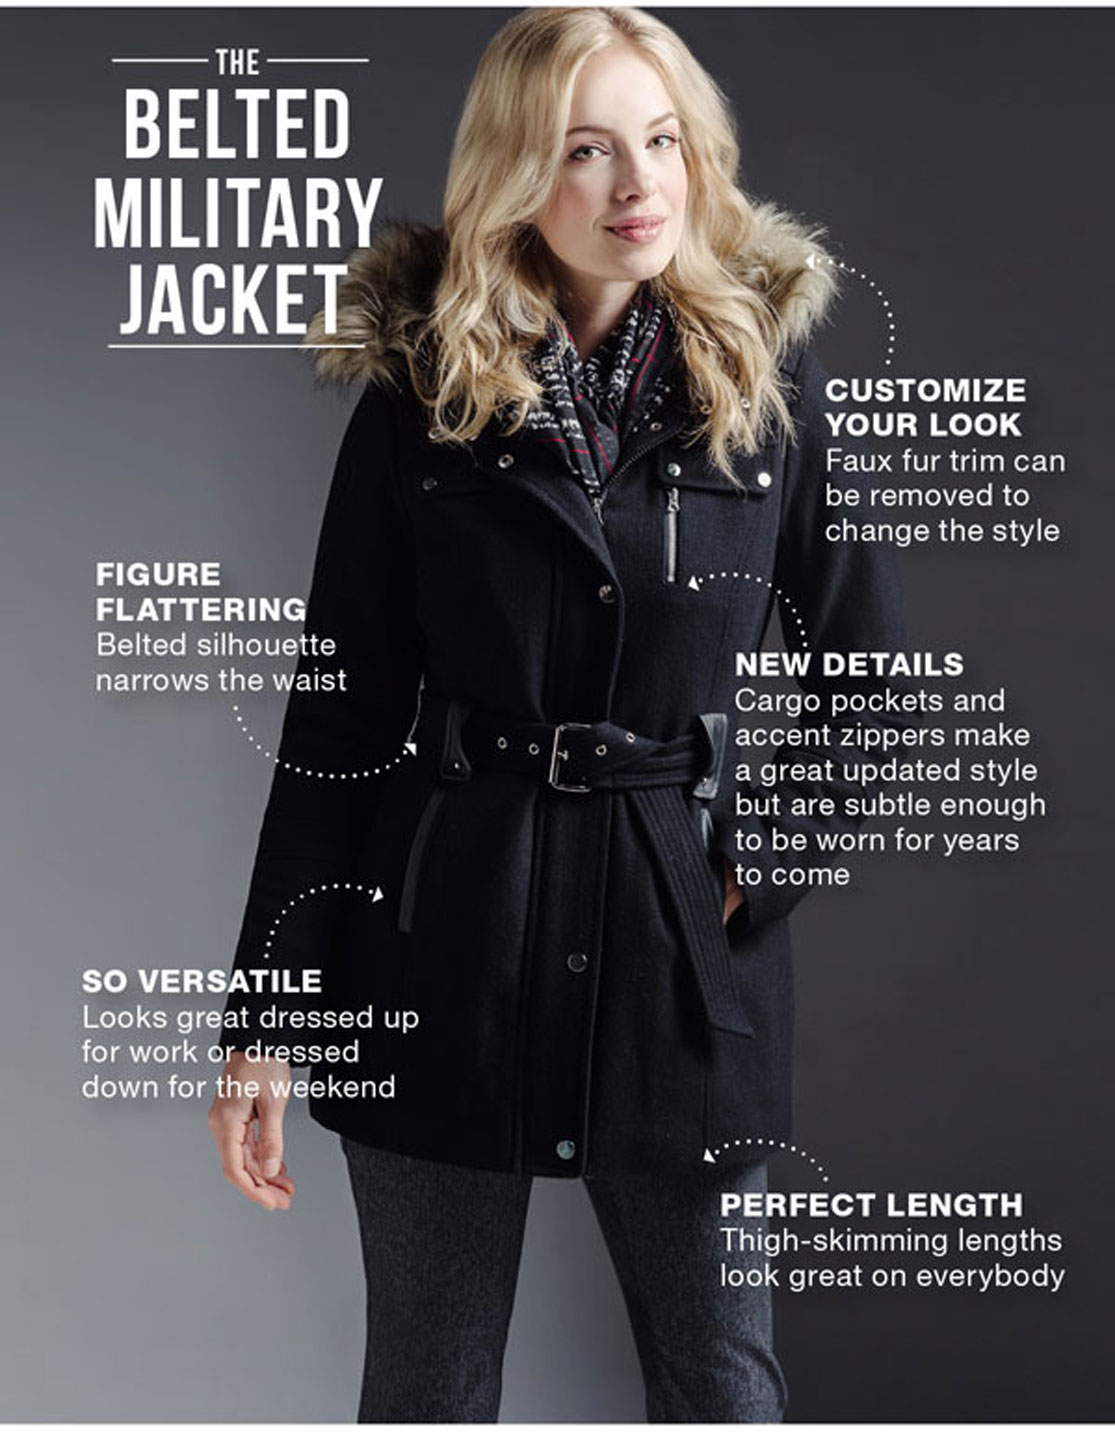 NOV1-MILITARYJACKET_02